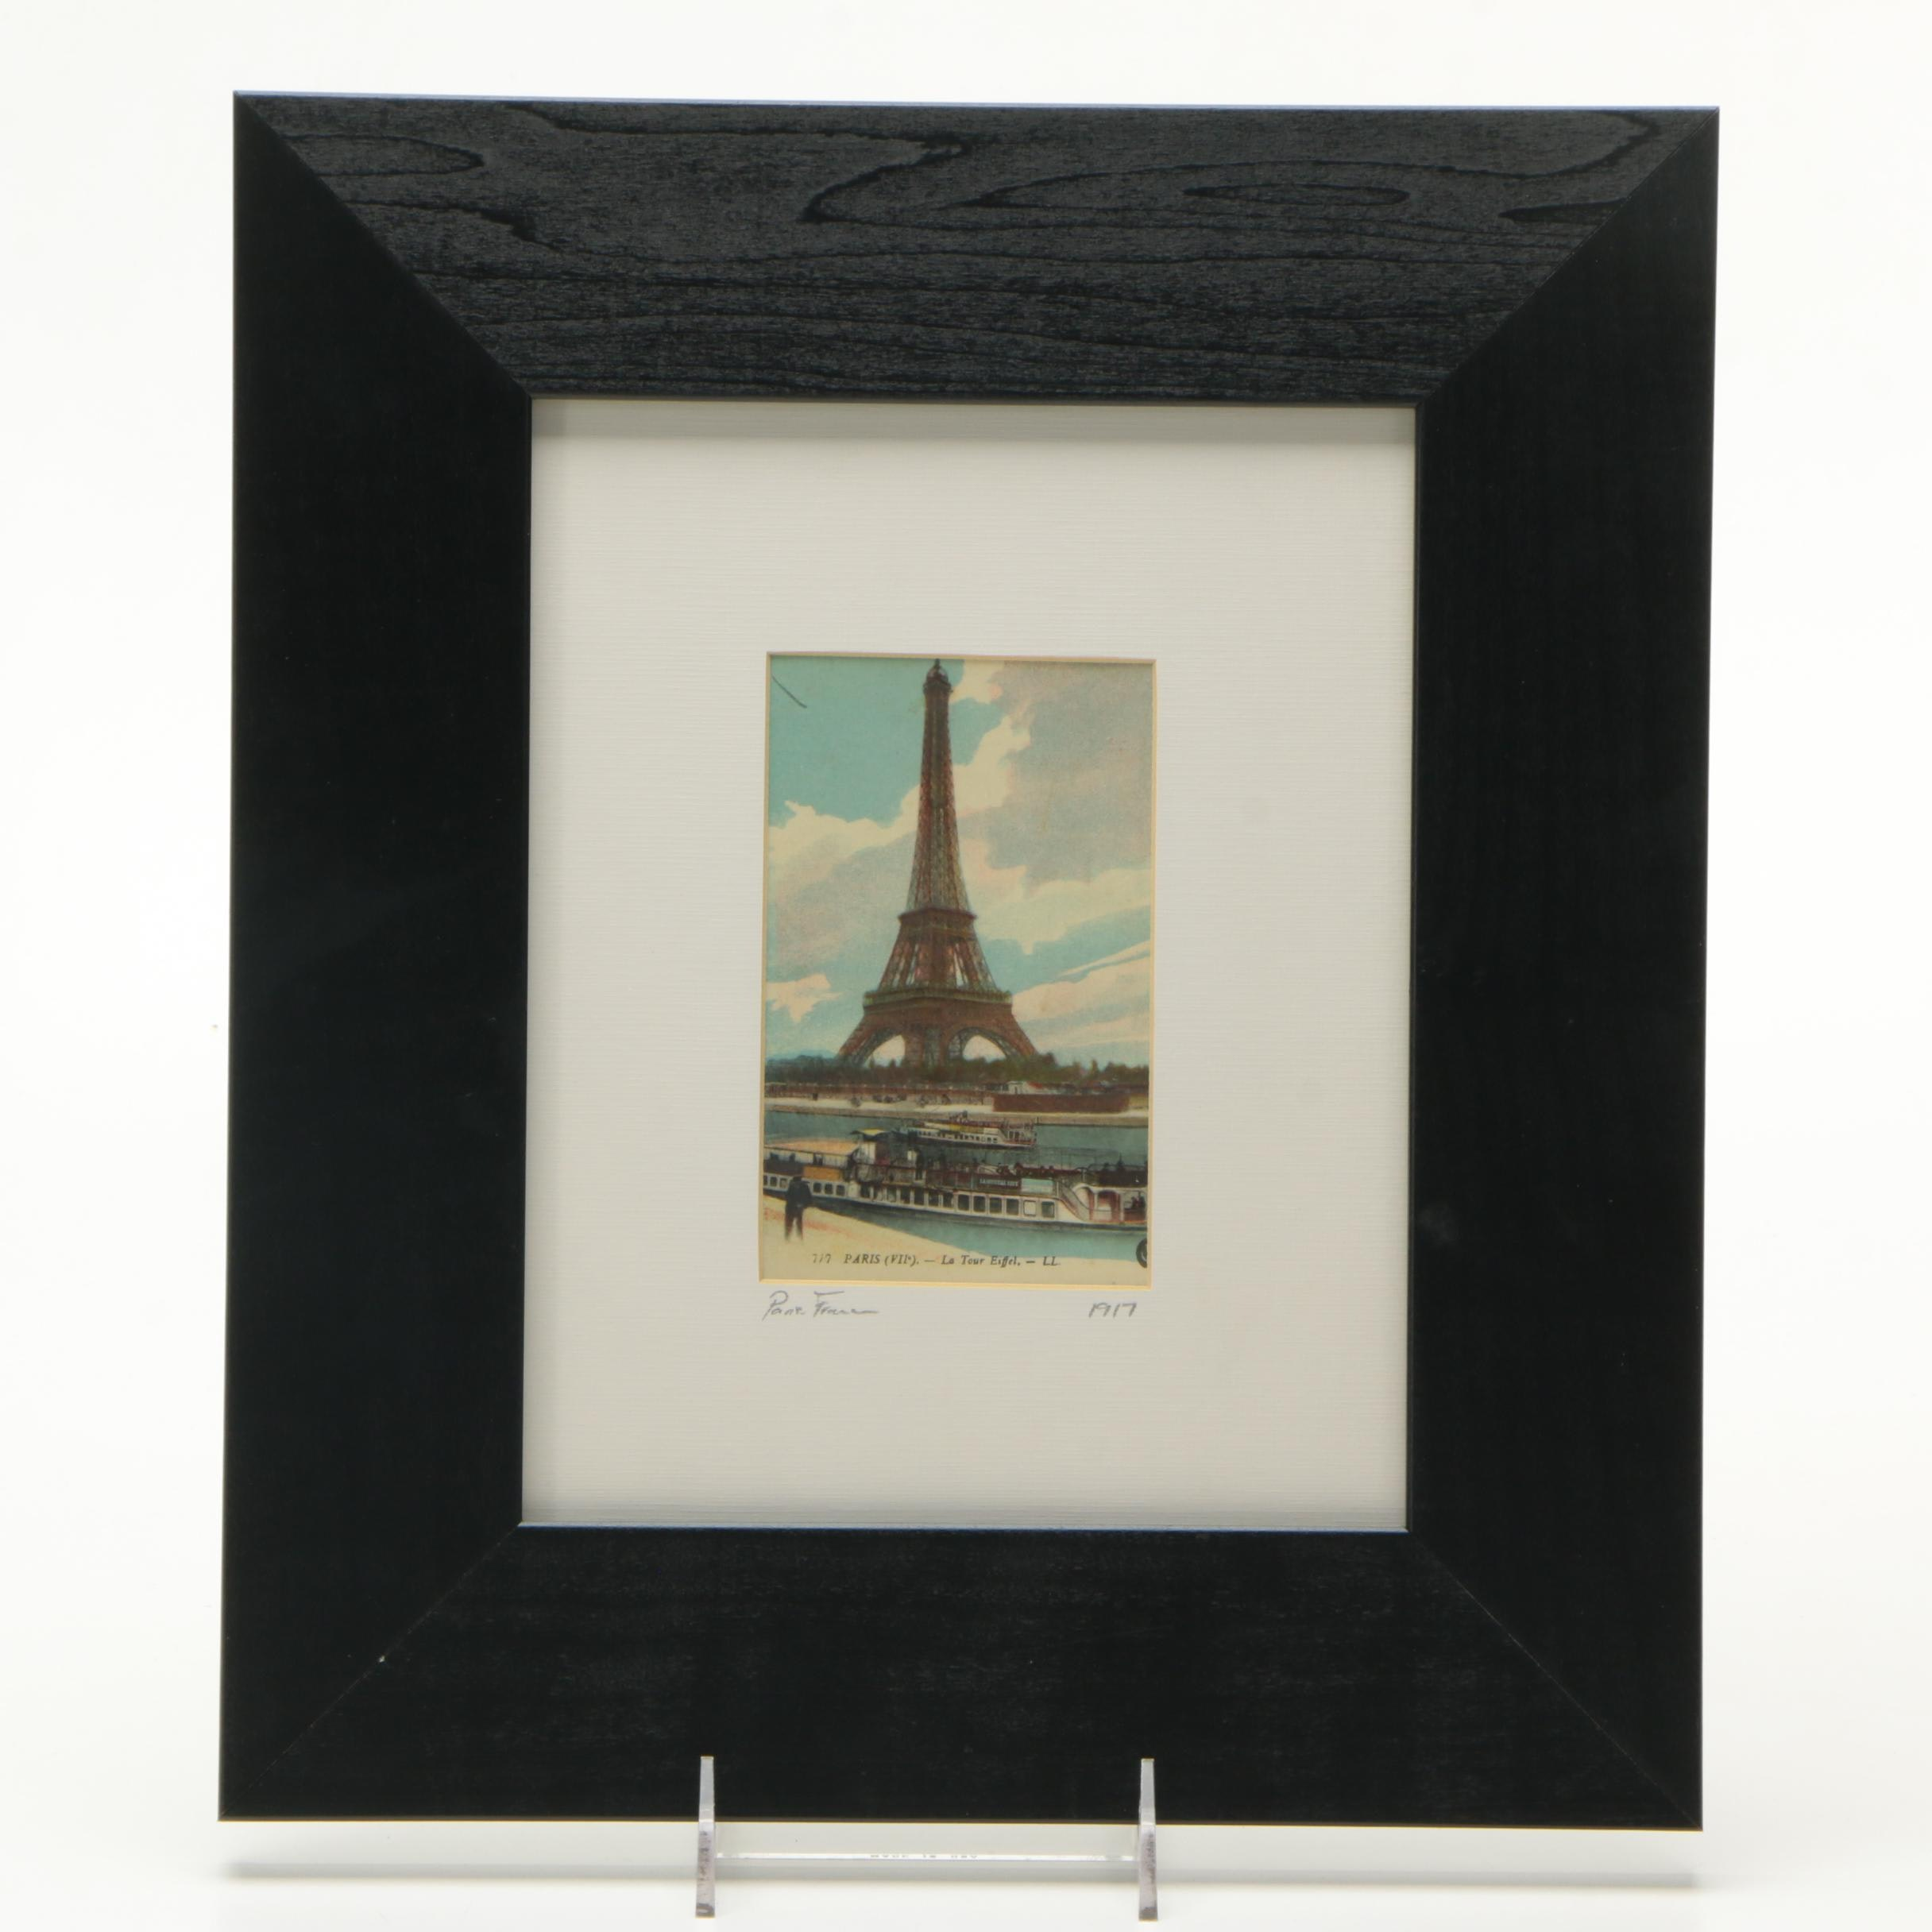 PRIORITY-1917 Chromolithographic Postcard of Paris with Note